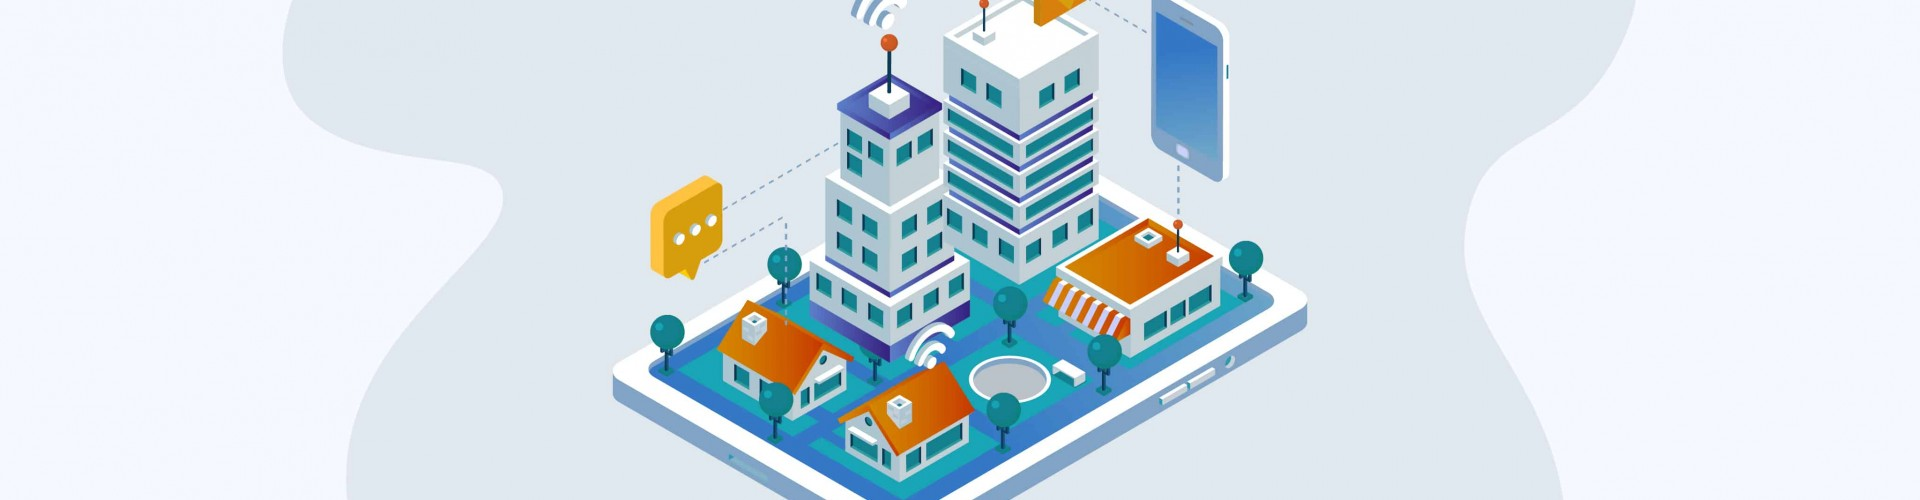 What is the Smart City?